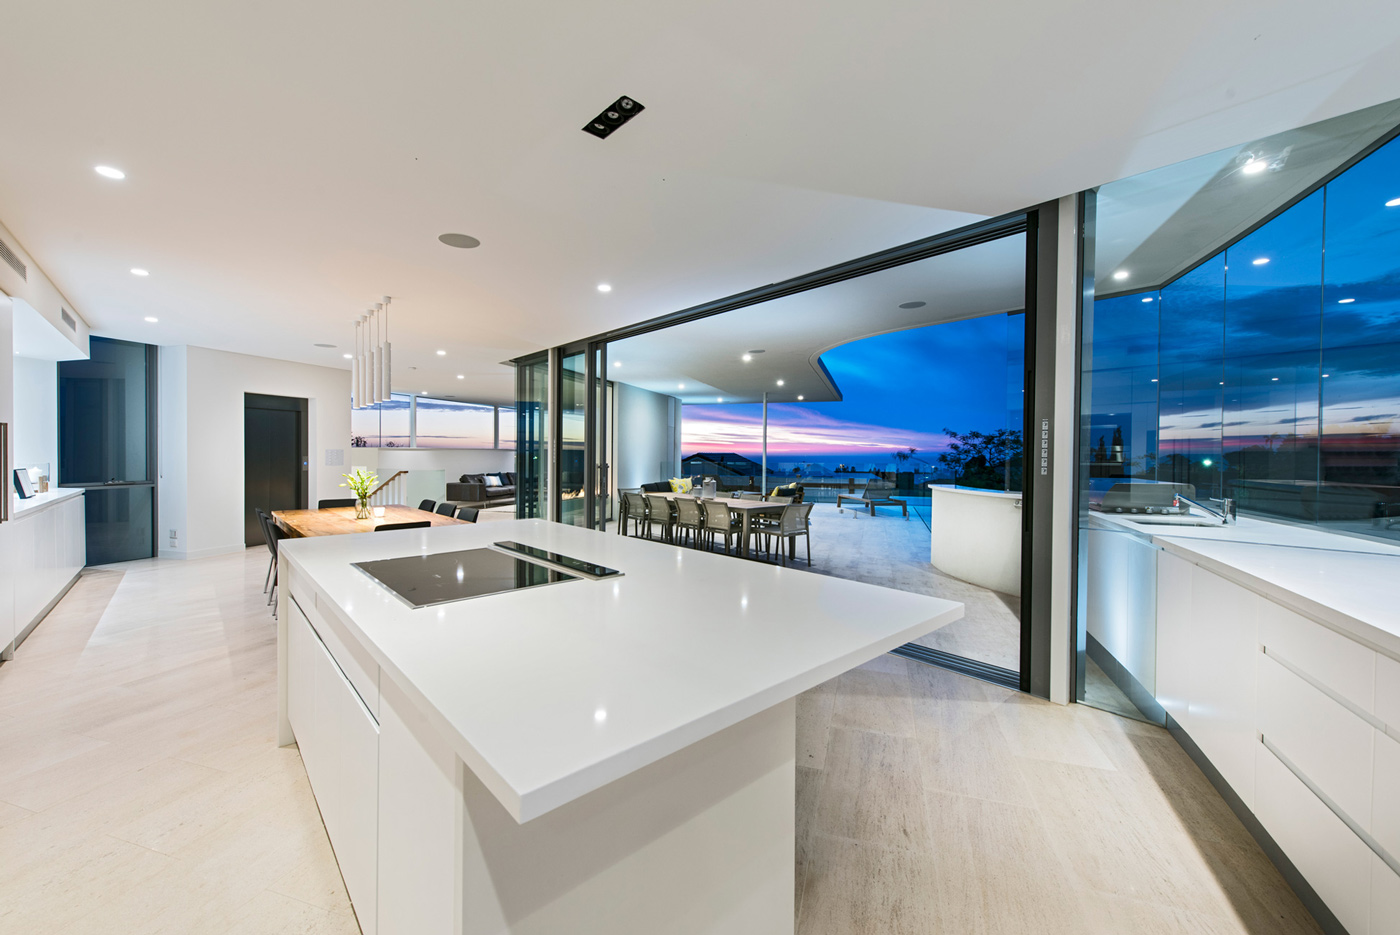 Kitchen Island, Glass Sliding Doors